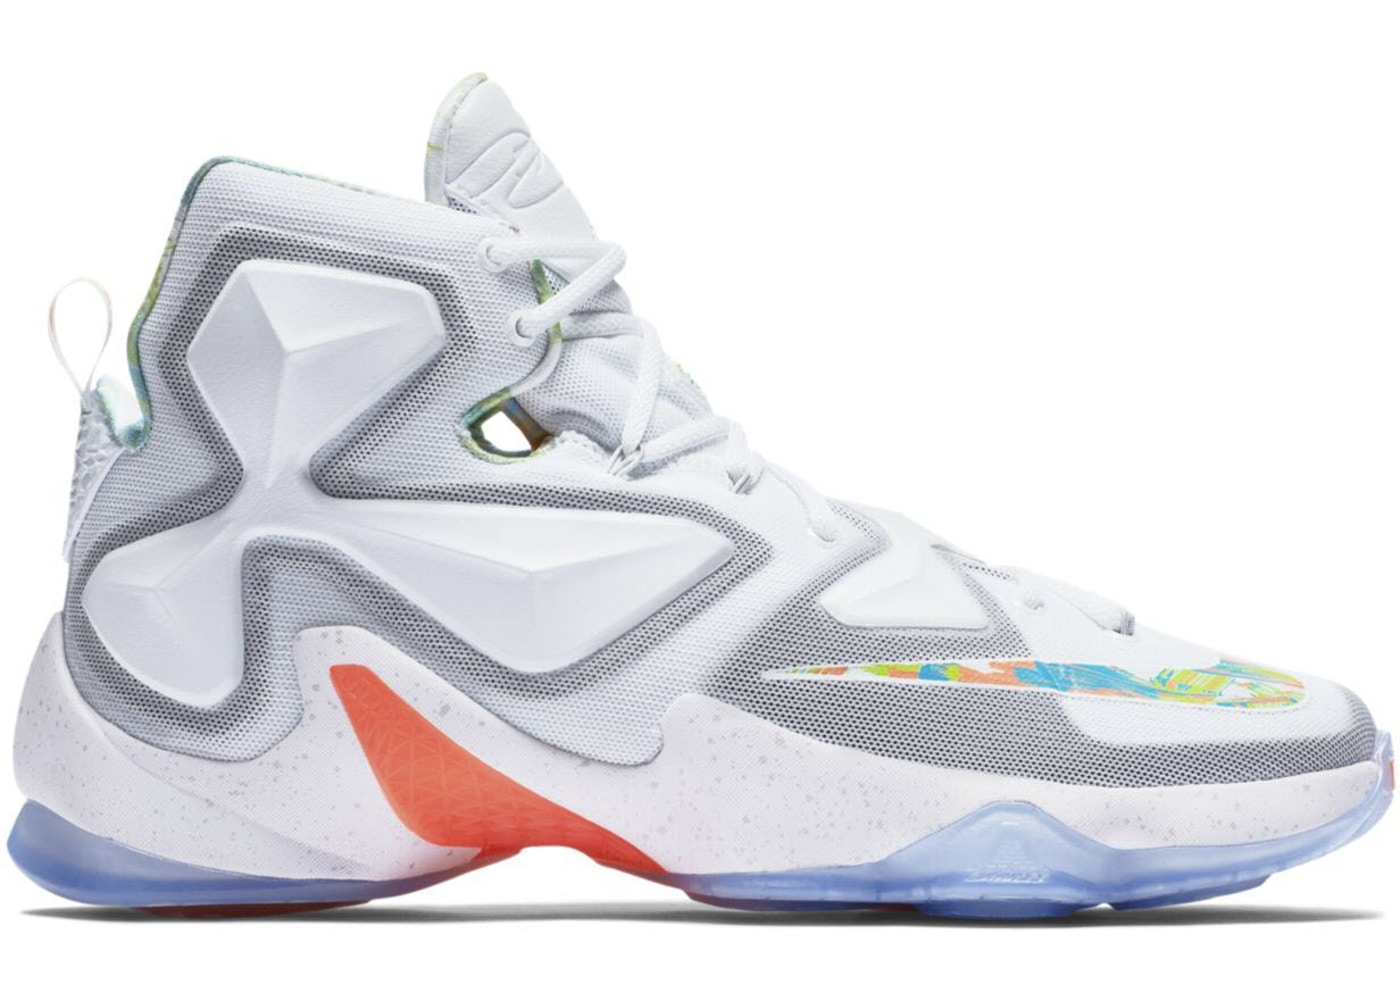 new style 19a3c 495ba Buy Nike LeBron 13 Shoes   Deadstock Sneakers